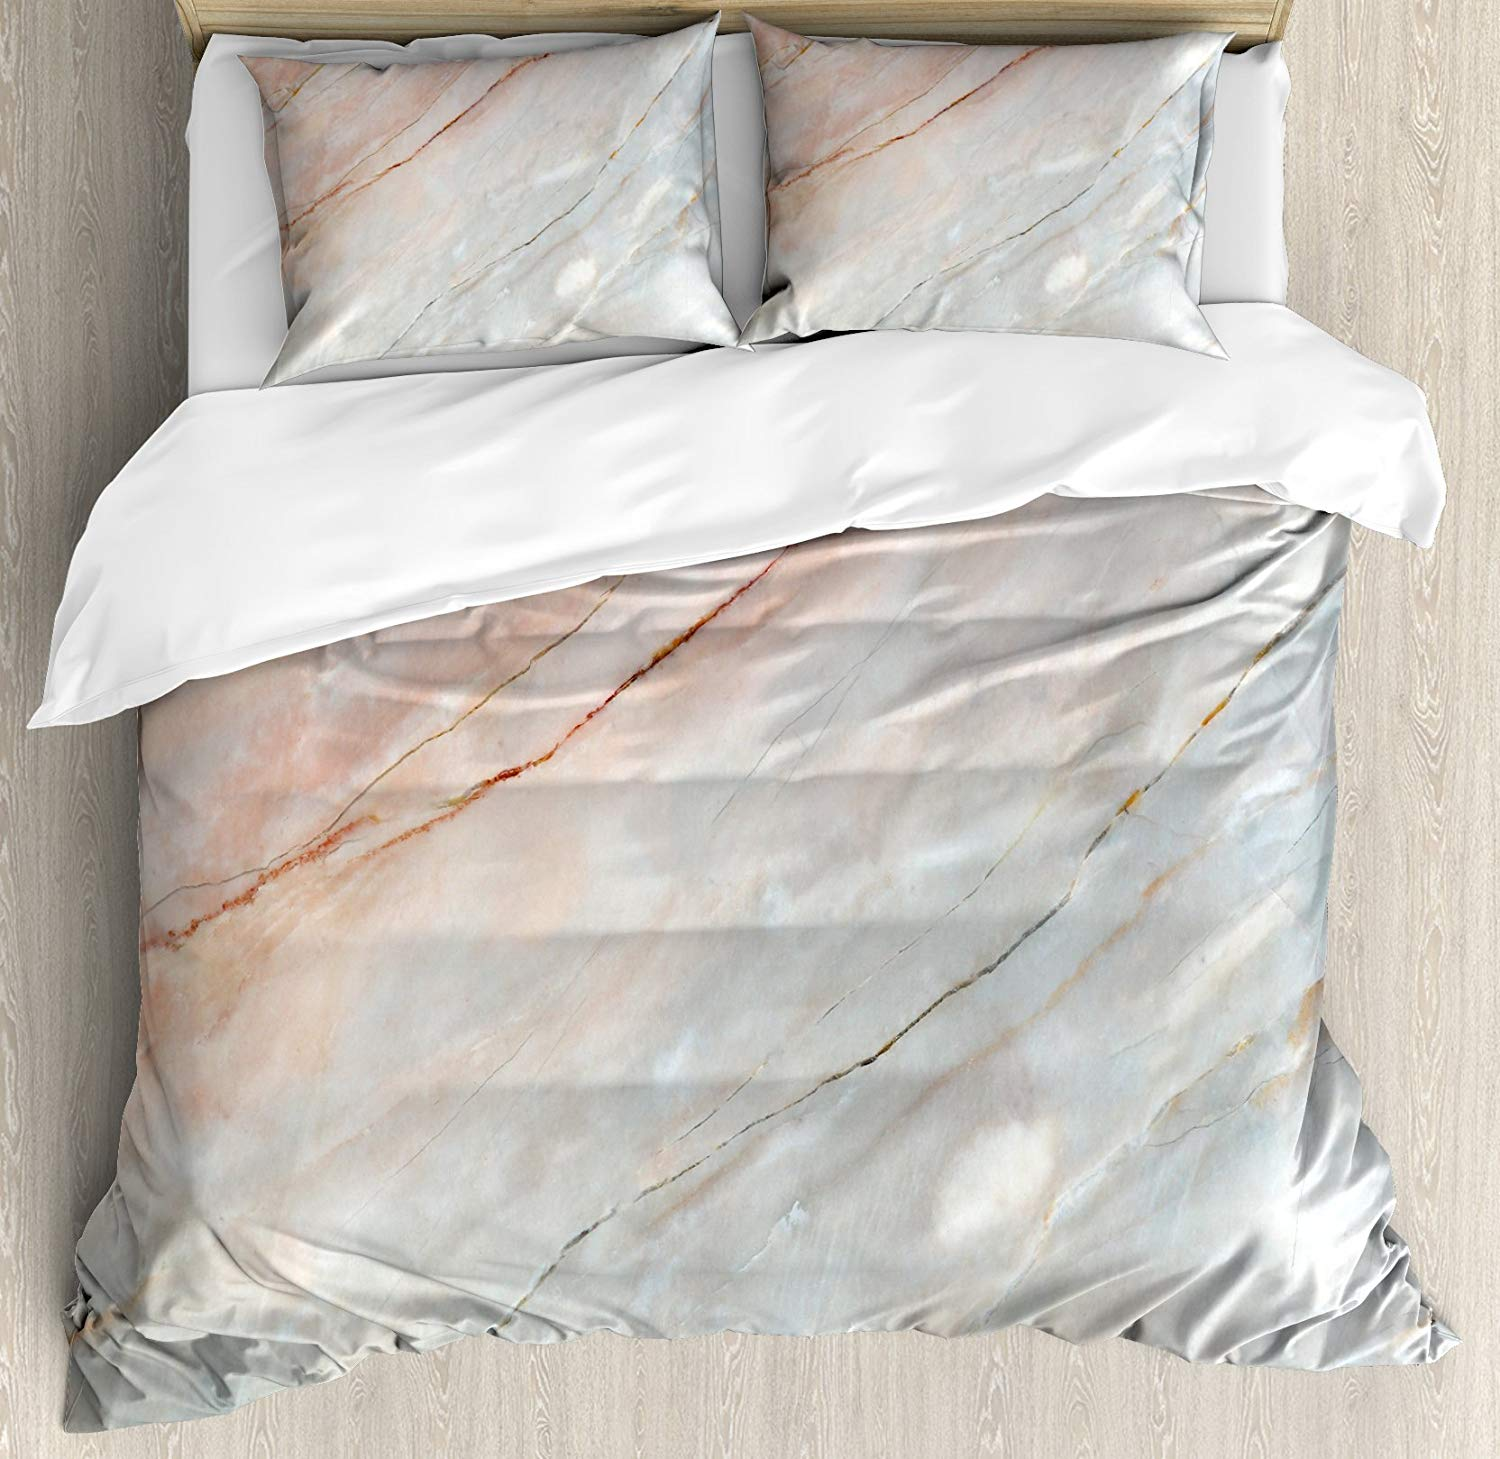 Marble Duvet Cover Set, Onyx Stone Textured Natural Featured Authentic Scratches Artful Illustration 4 Piece Bedding Set